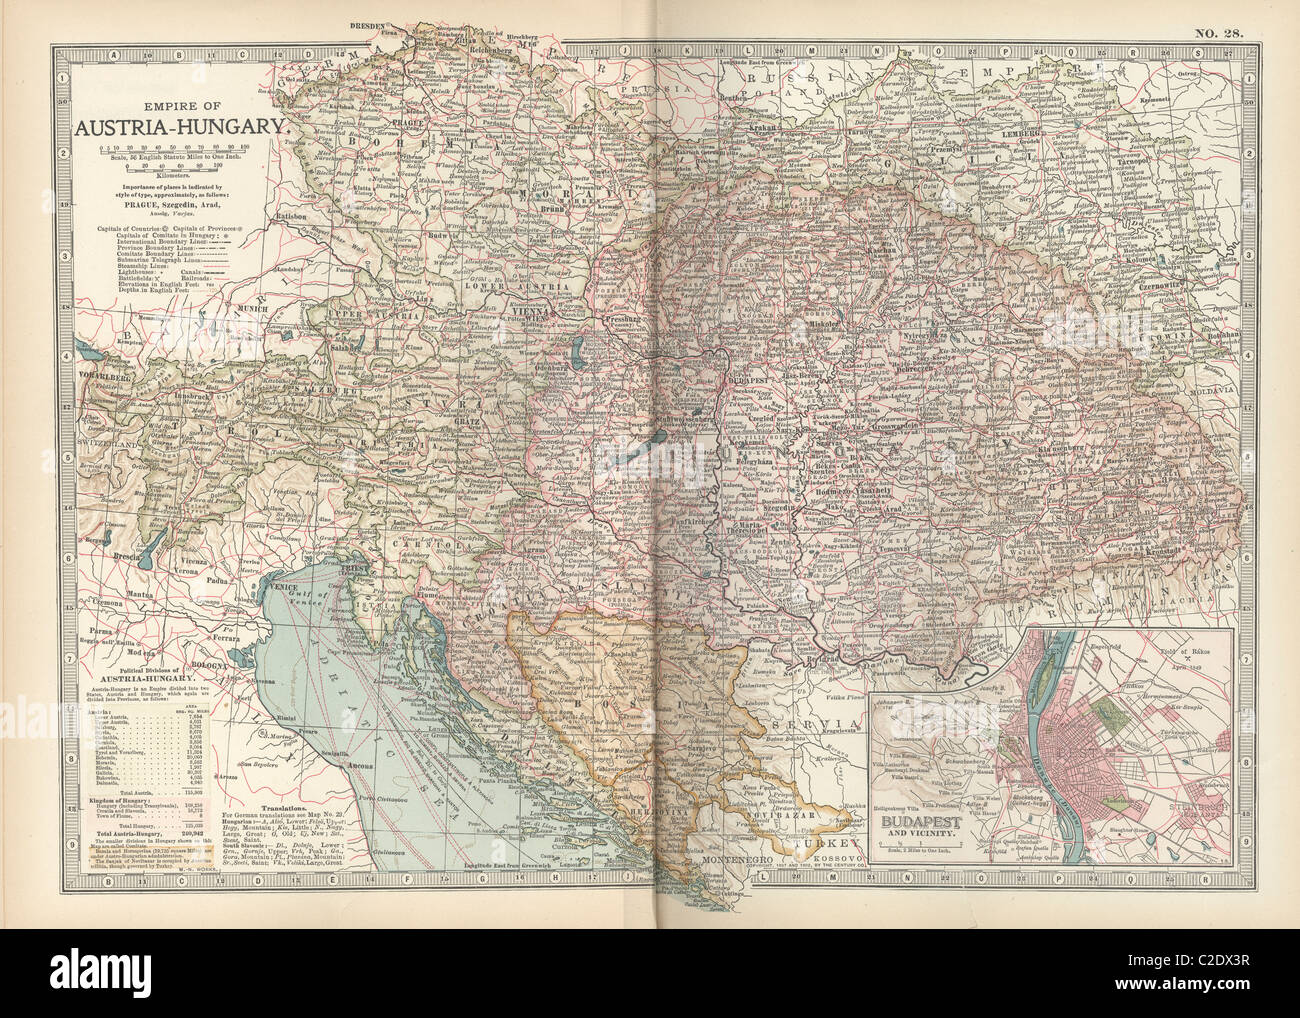 Map of the Empire of Austria-Hungary - Stock Image